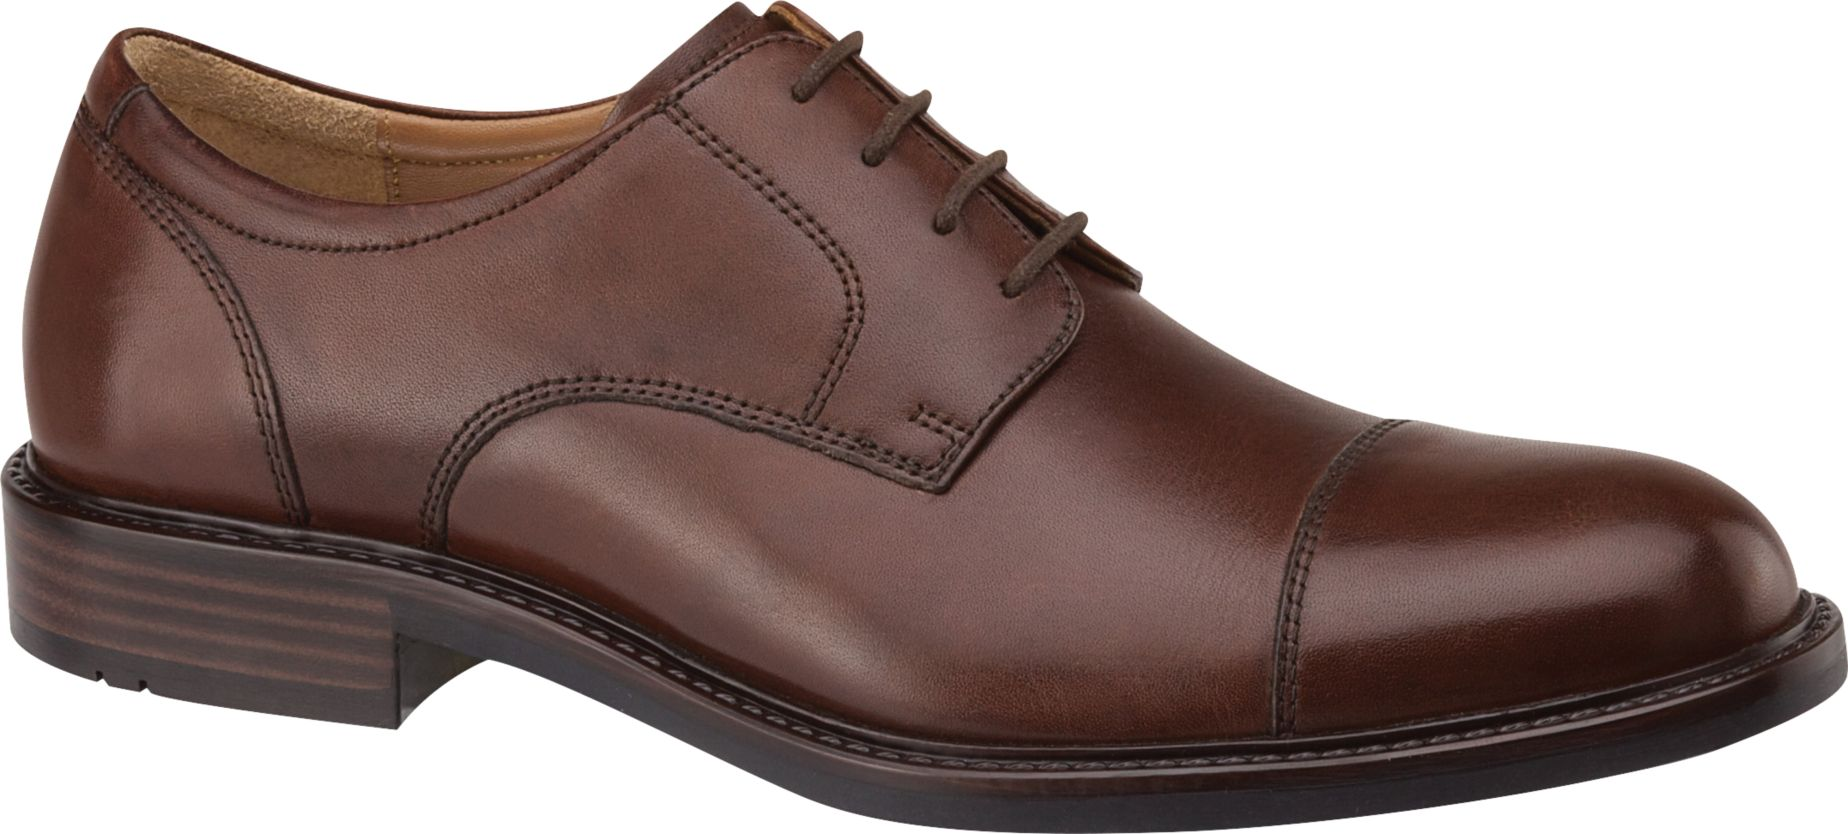 johnston and murphy mens shoes sale